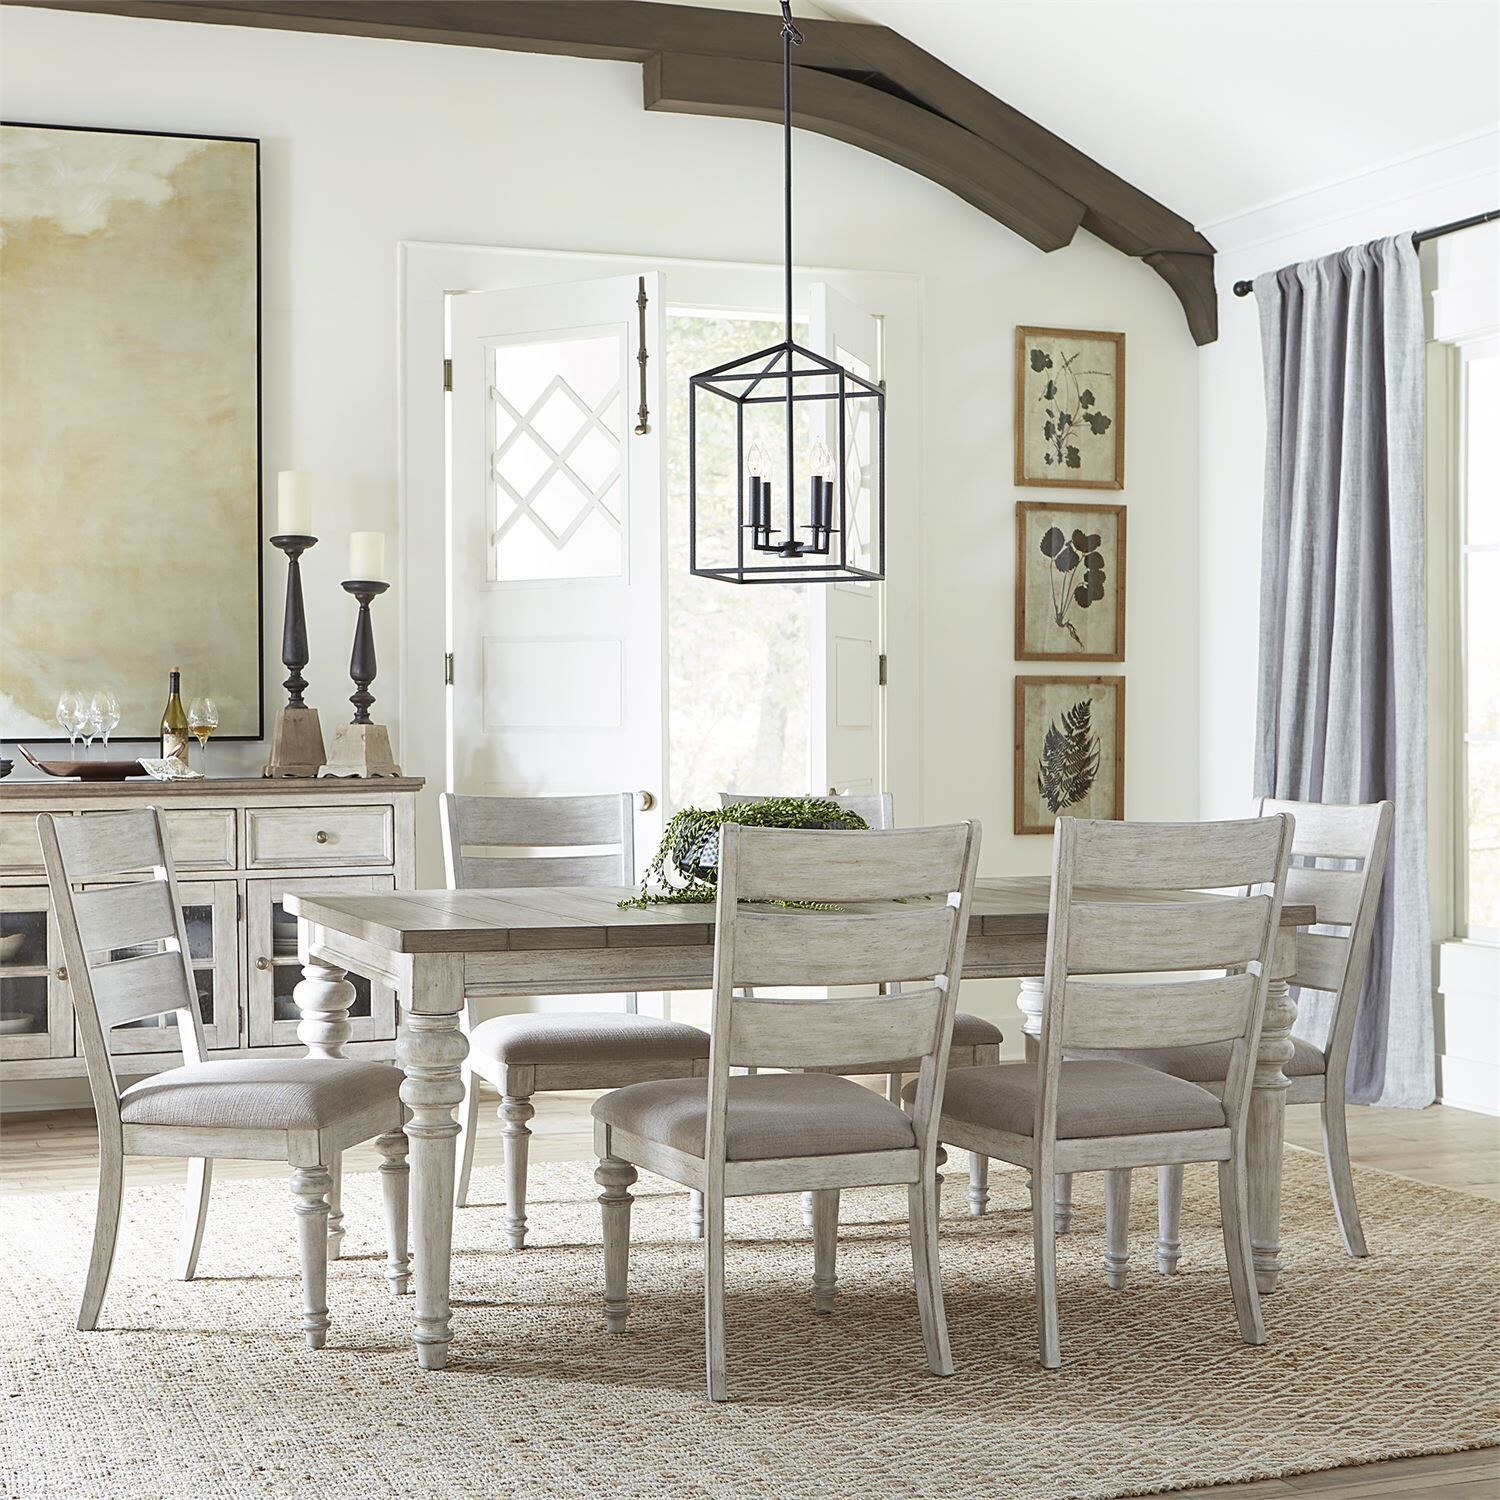 Heartland 7-Piece Dining Set by Liberty Furniture at Upper Room Home Furnishings